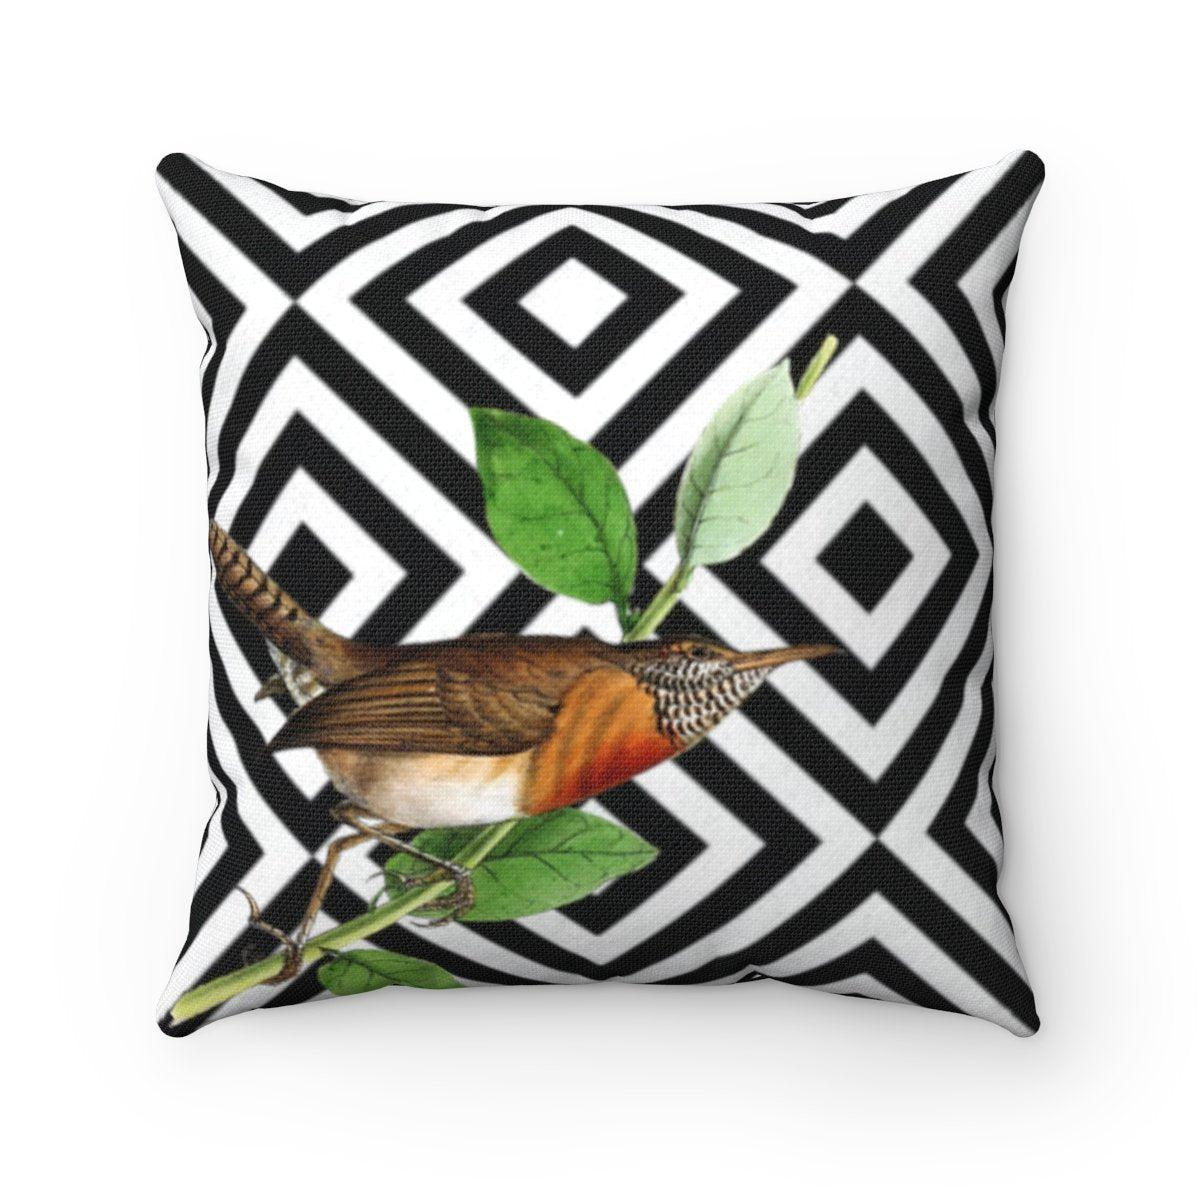 Luxury bird abstract decorative cushion cover-Home Decor - Decorative Accents - Pillows & Throws - Decorative Pillows-Maison d'Elite-14x14-Très Elite